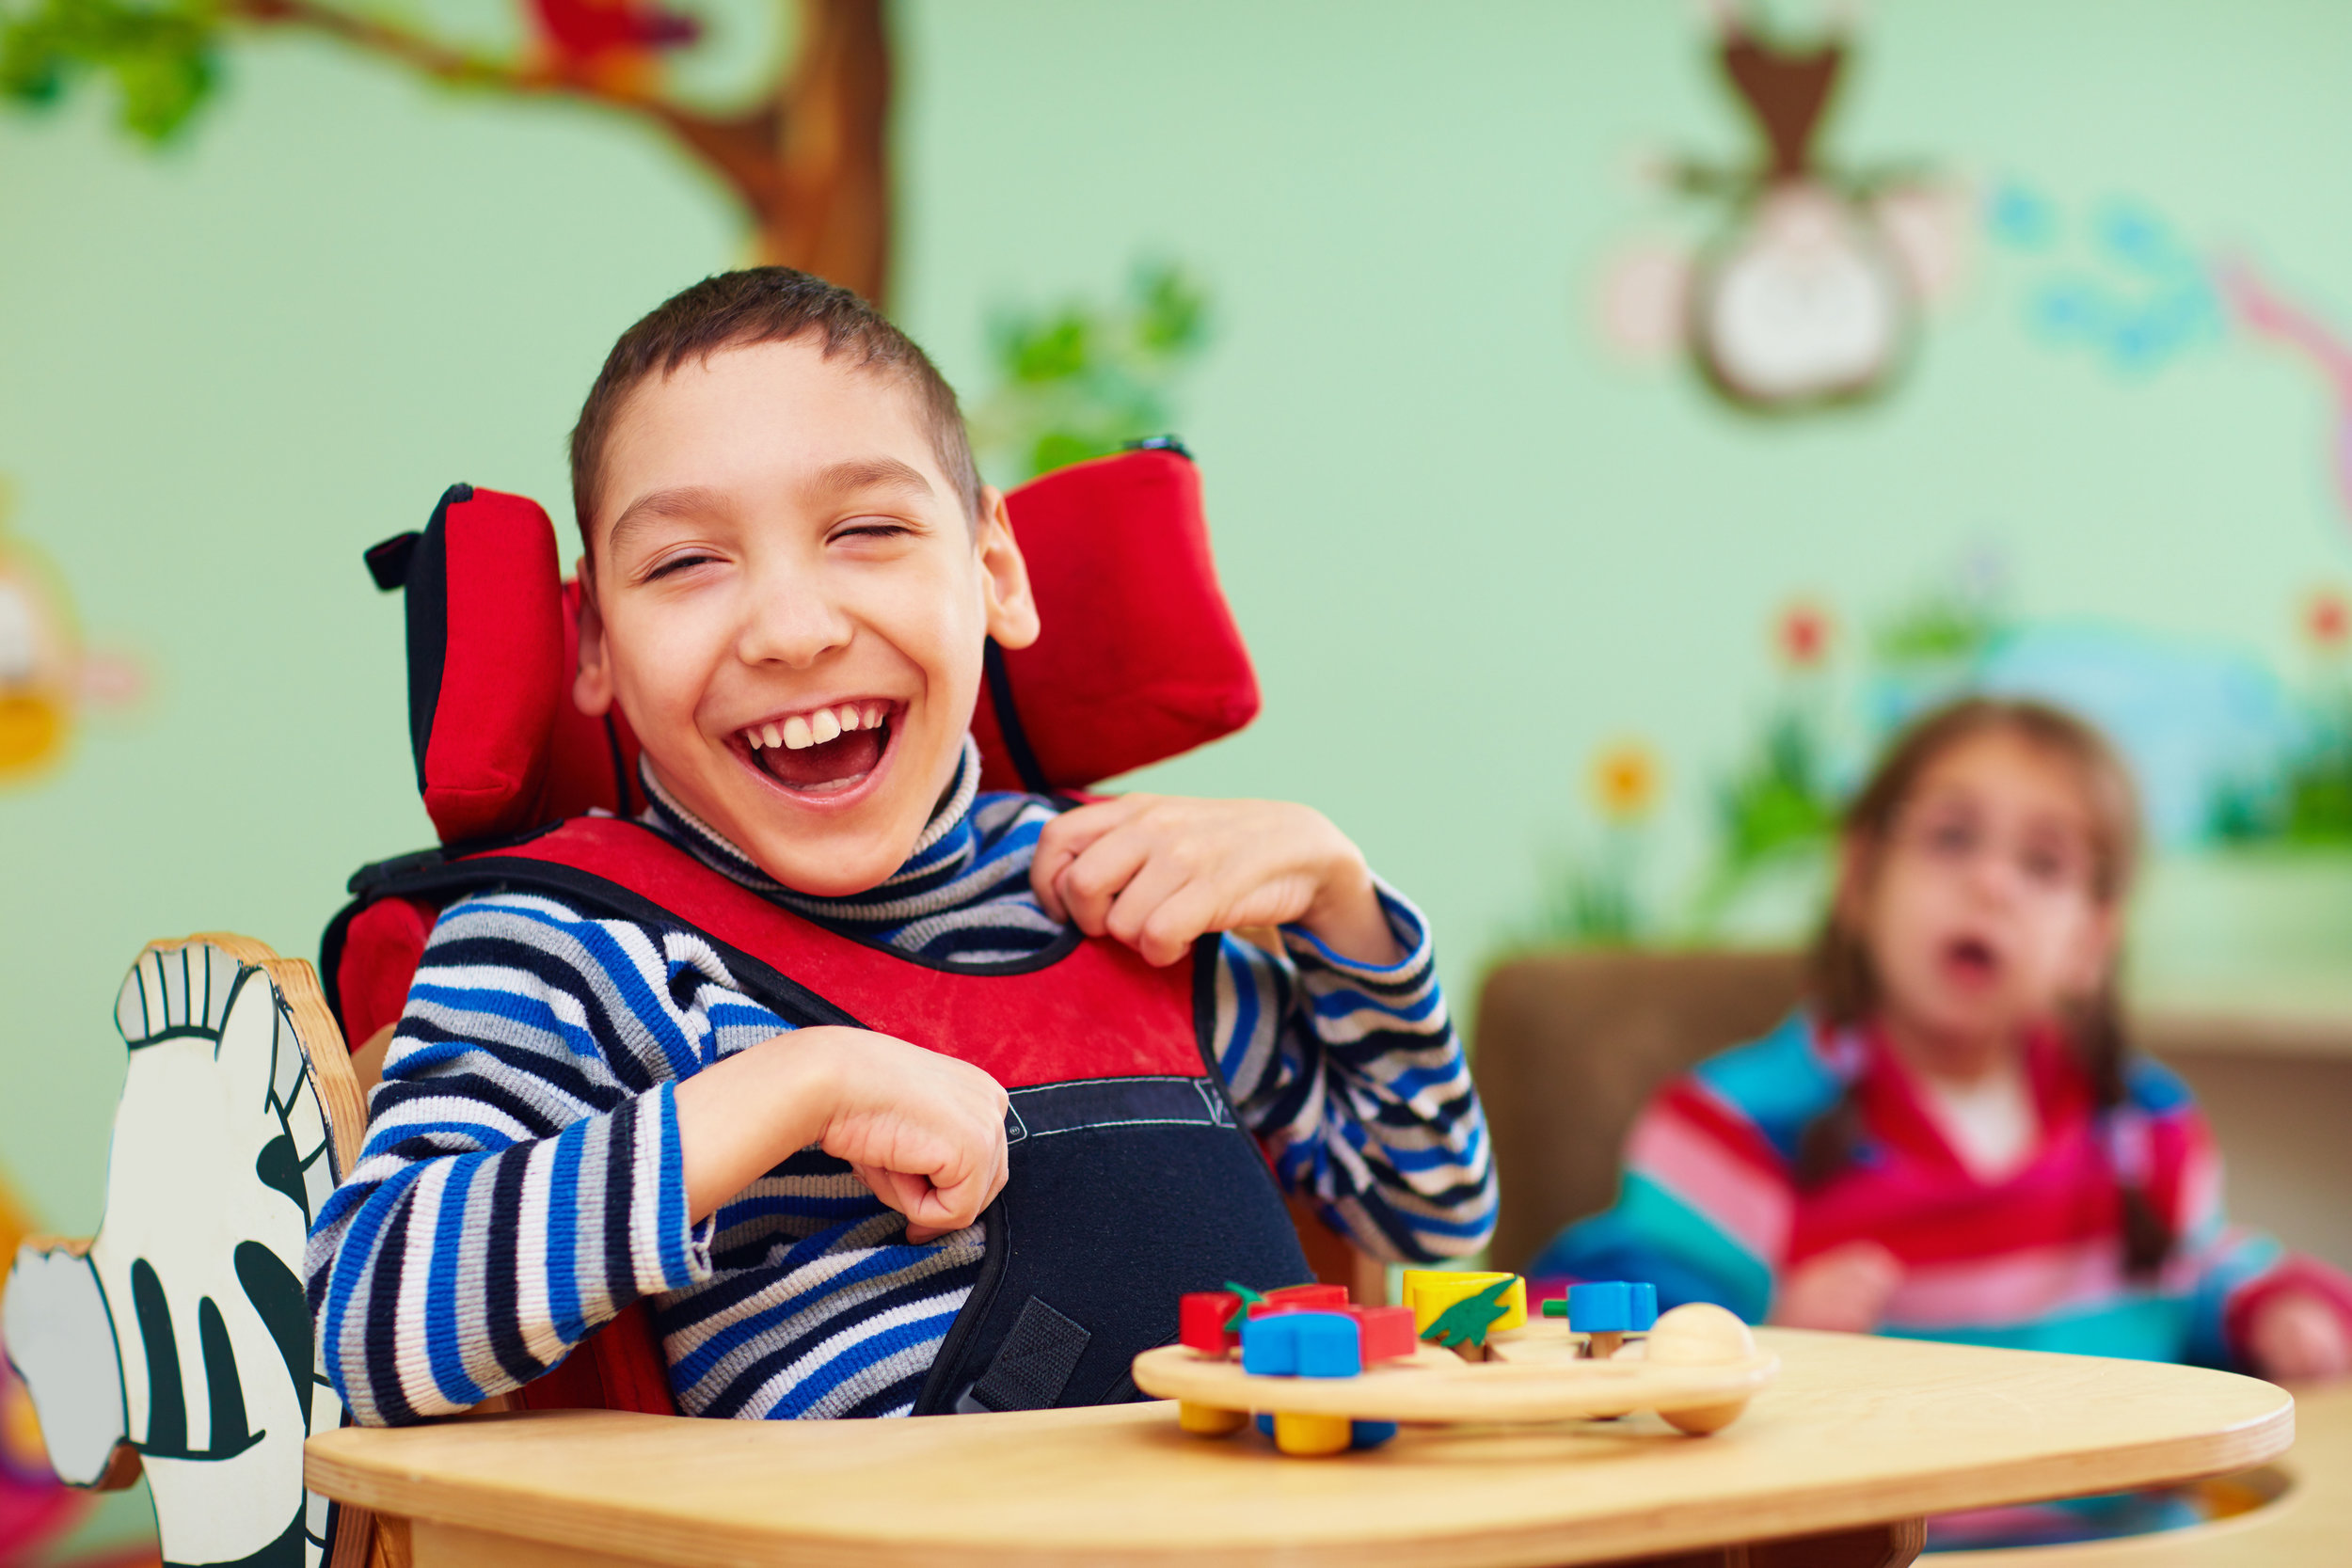 Young man with cognitive disabilities smiling.